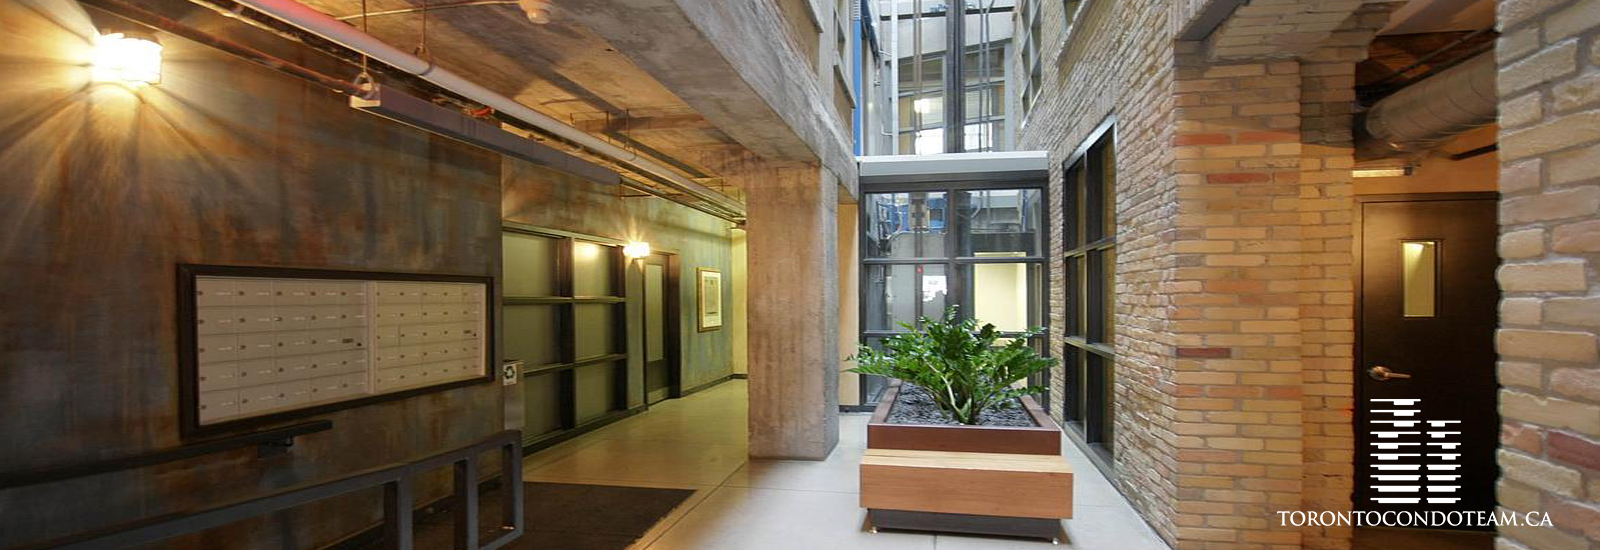 383 Adelaide Street East Condos For Sale